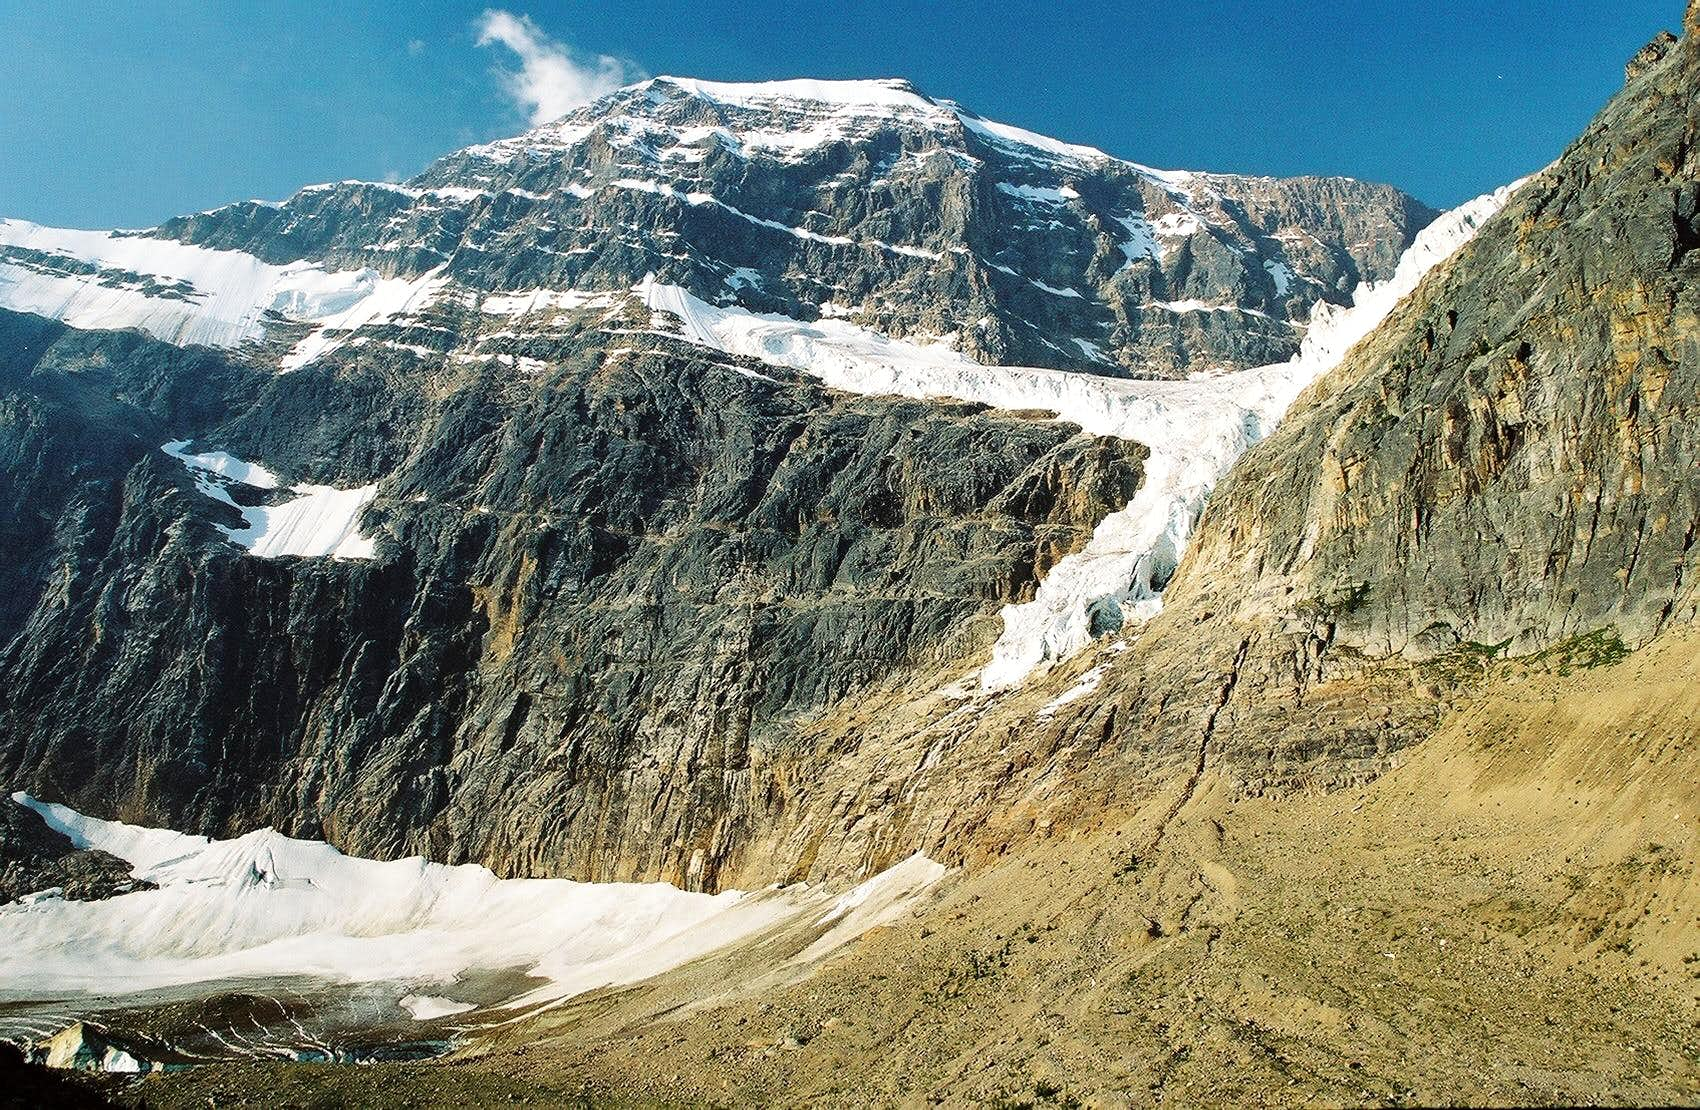 Path of the Glacier/Cavell Meadows